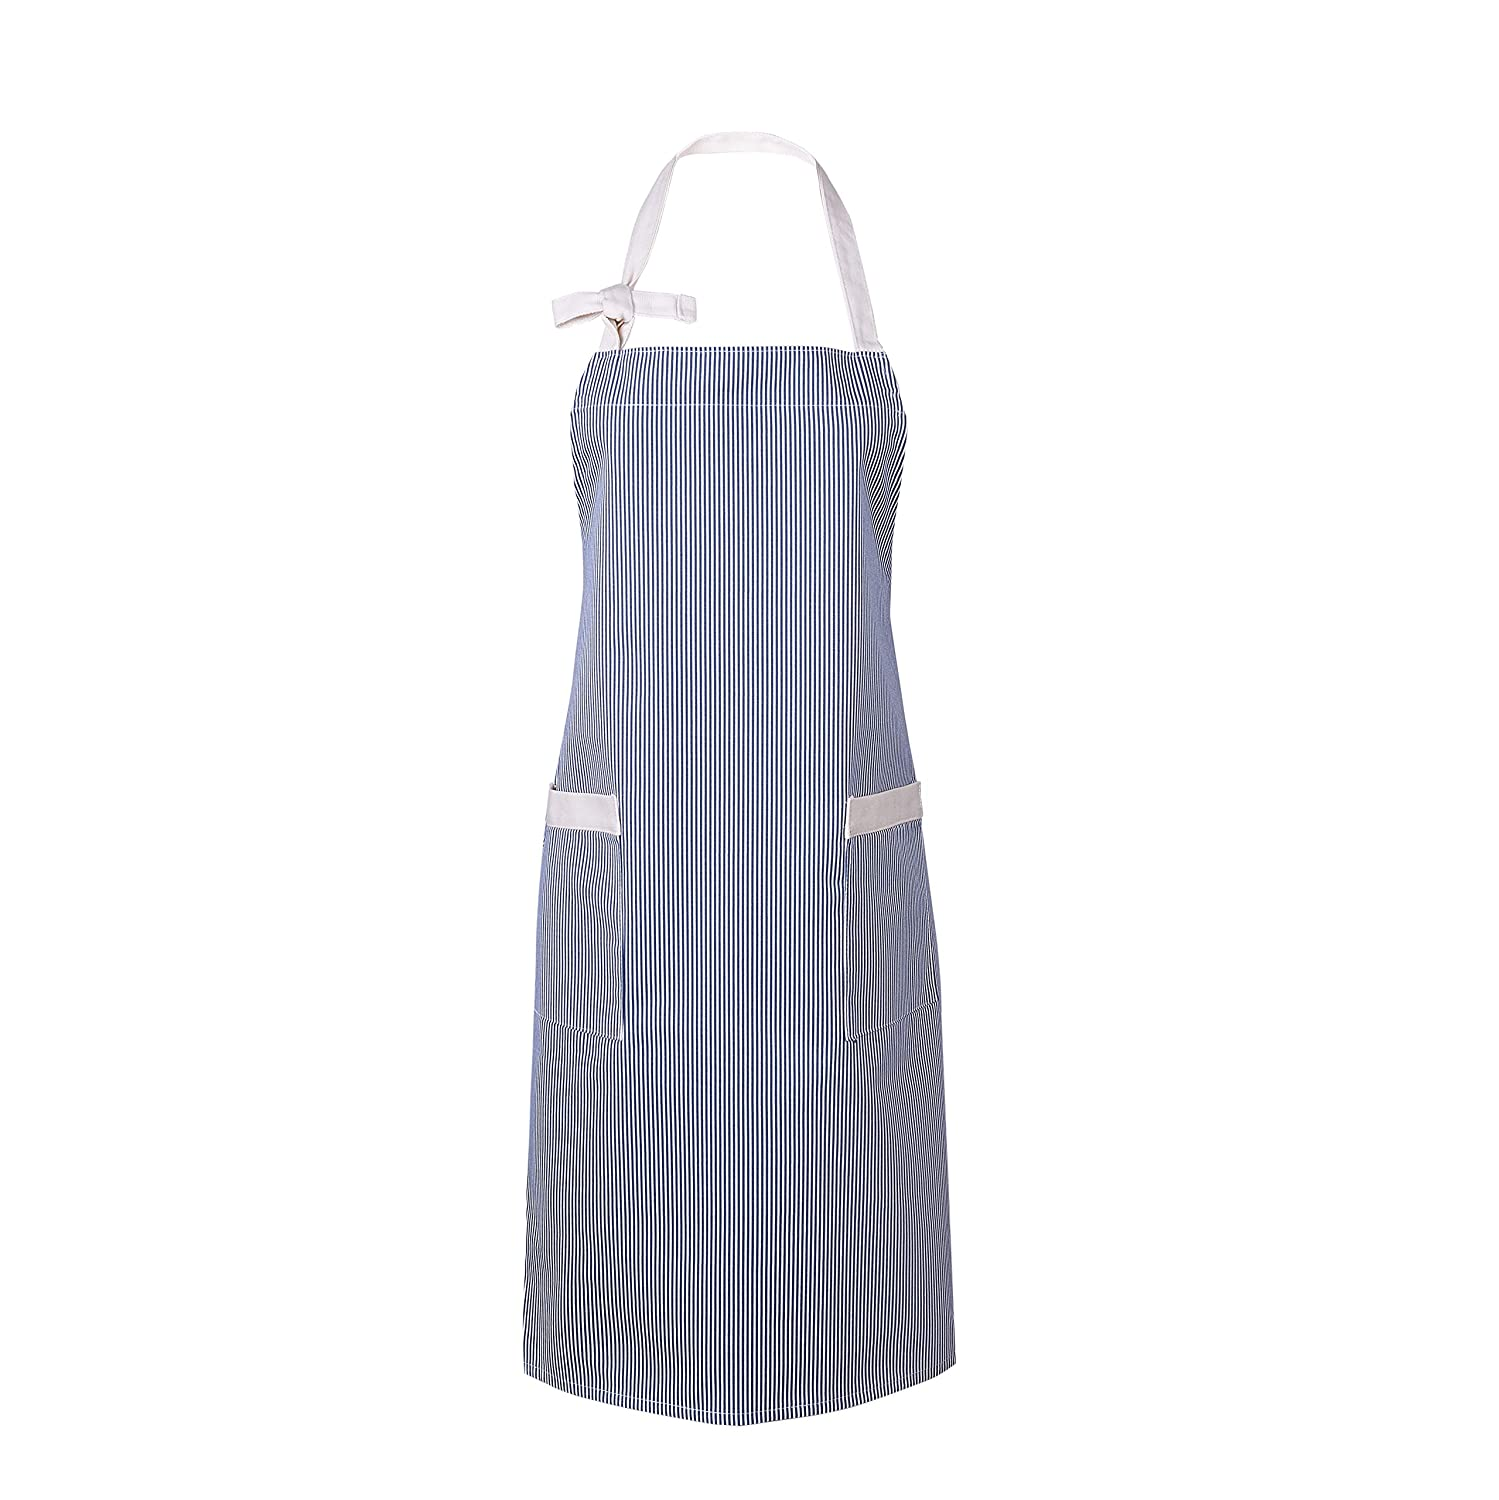 Blue and White Pinstripe Waitworth 1 Pack Cotton Canvas Bib Apron 2 Pockets Adjustable Neck Strap Apron Cooking Kitchen Crafting Artist Gardening Aprons for Women Men Adults